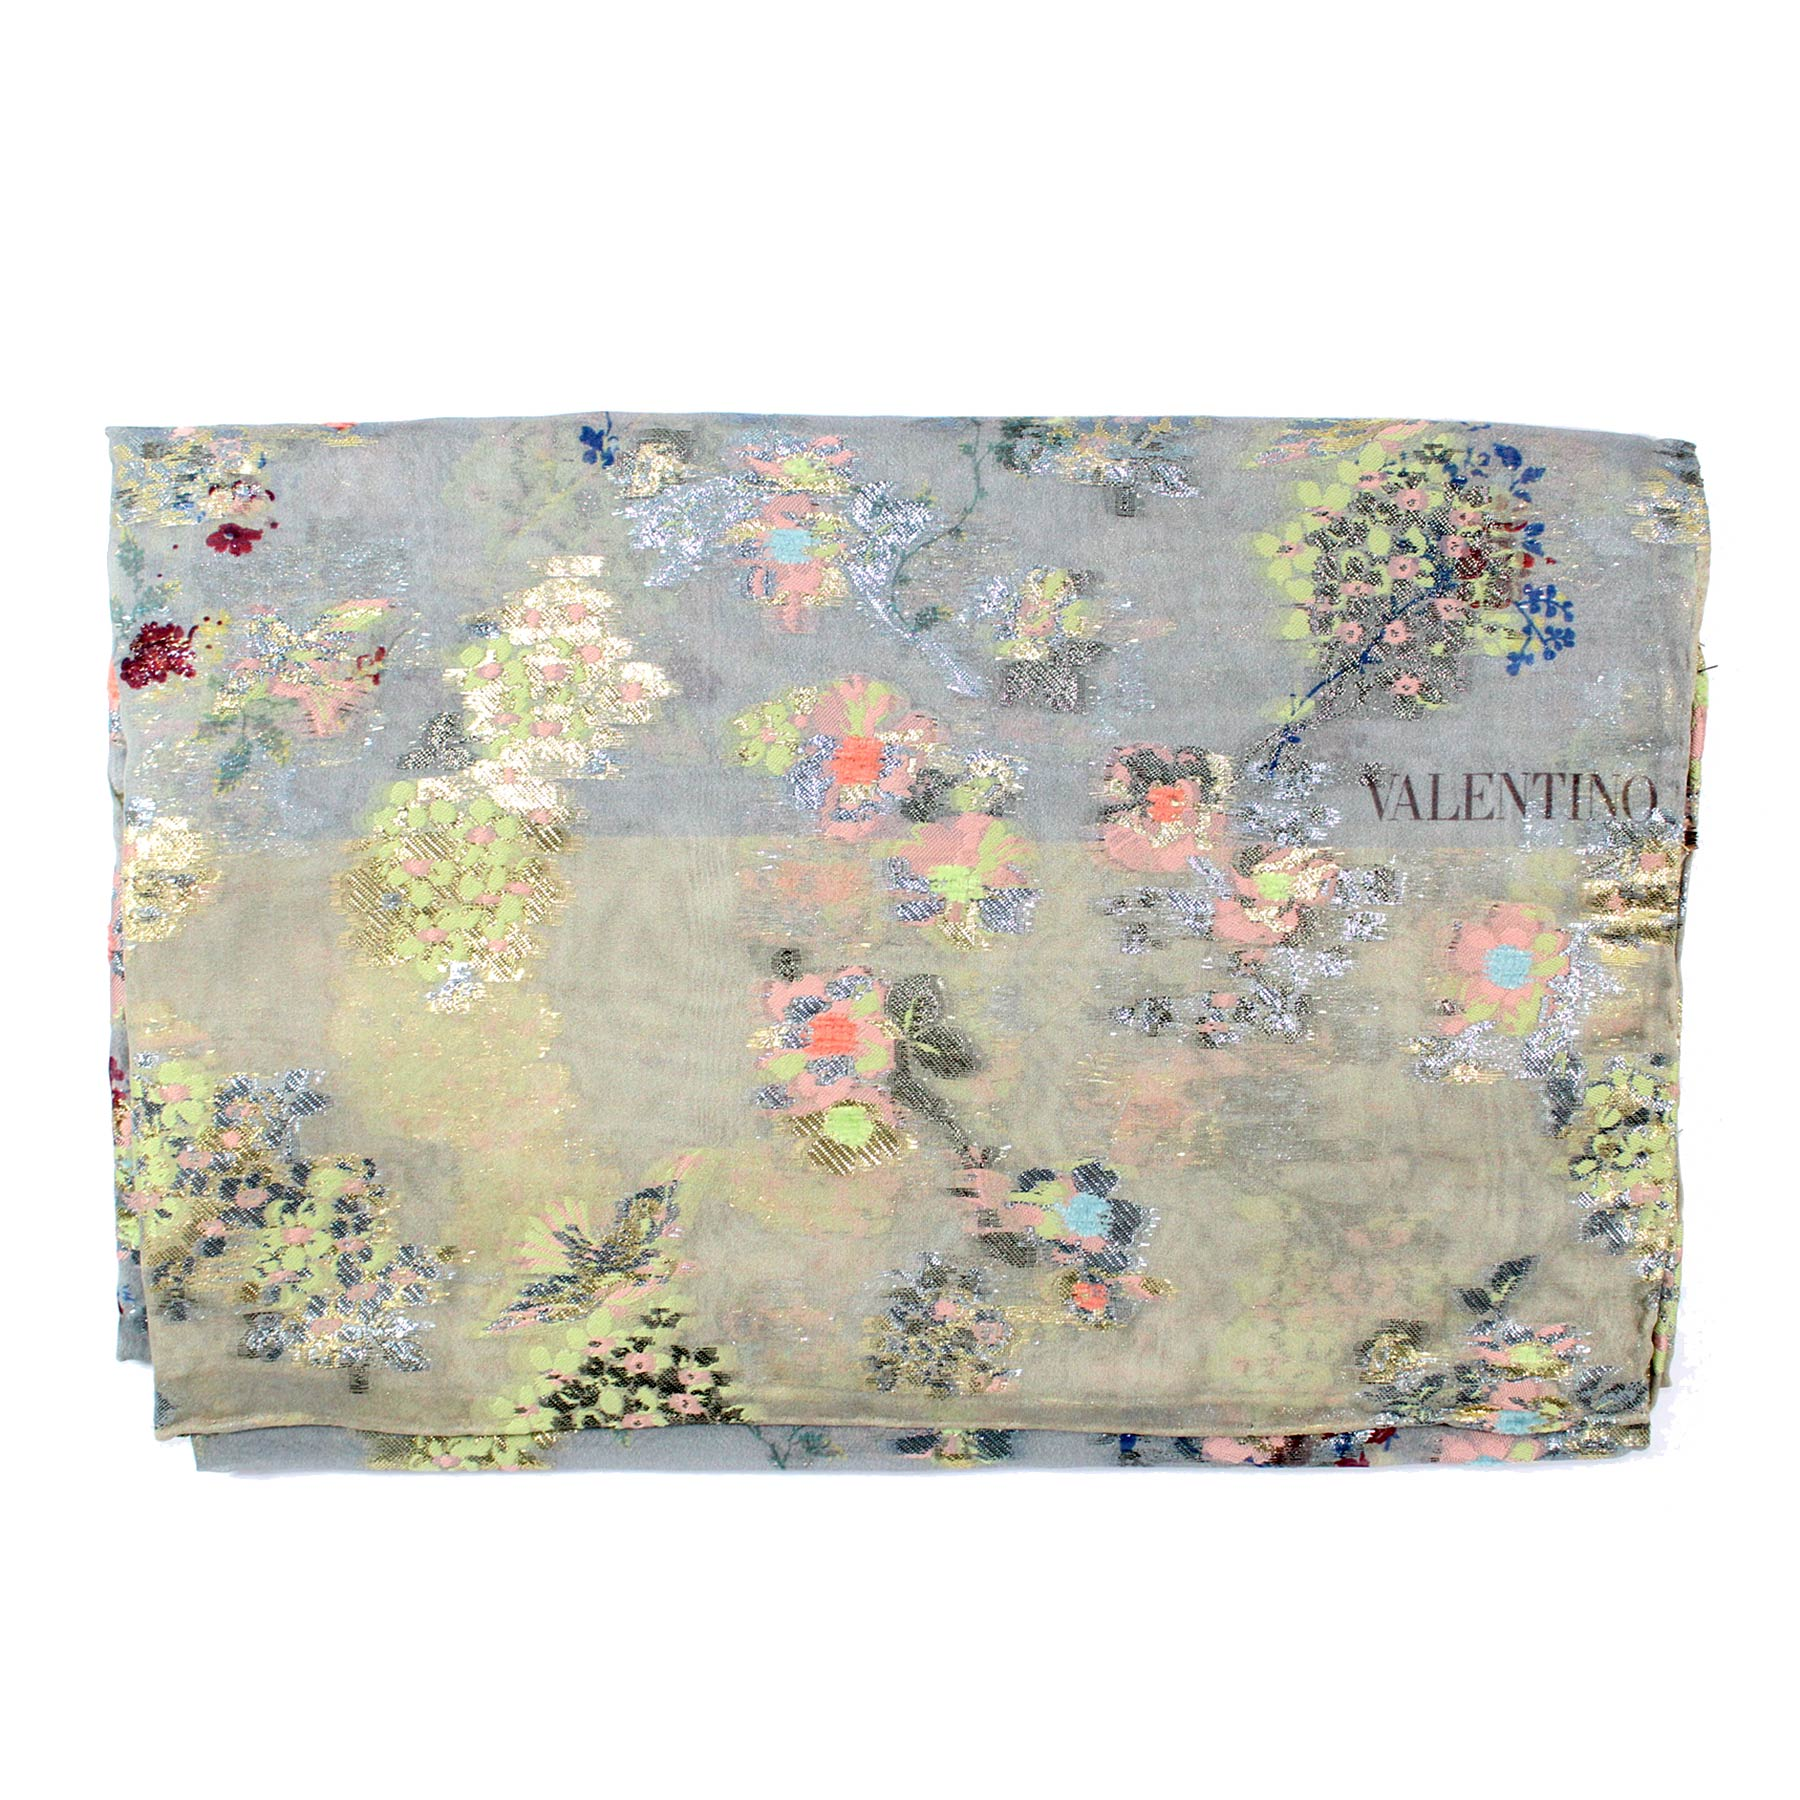 Valentino Scarf Gray Pink Floral Design Metal-Silk Blend Women Shawl